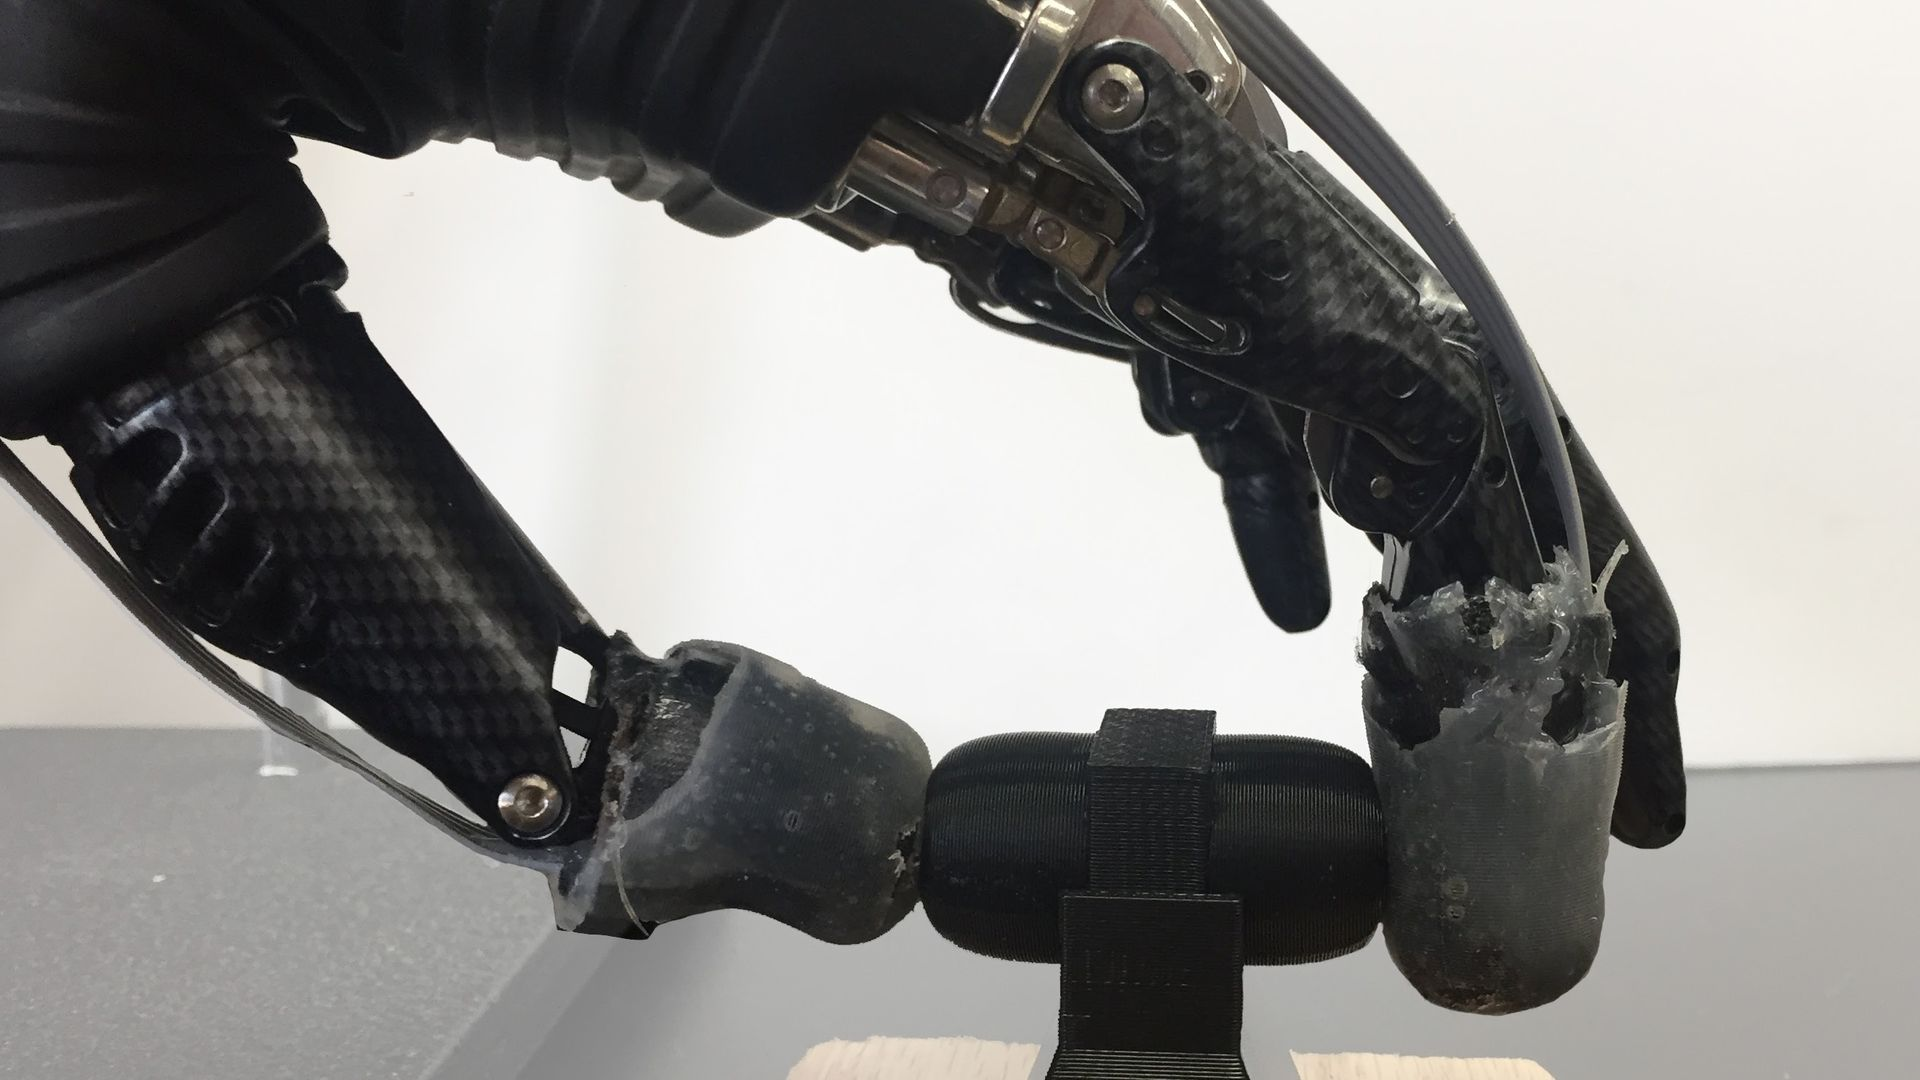 A prosthetic hand with e-dermis picks up an object